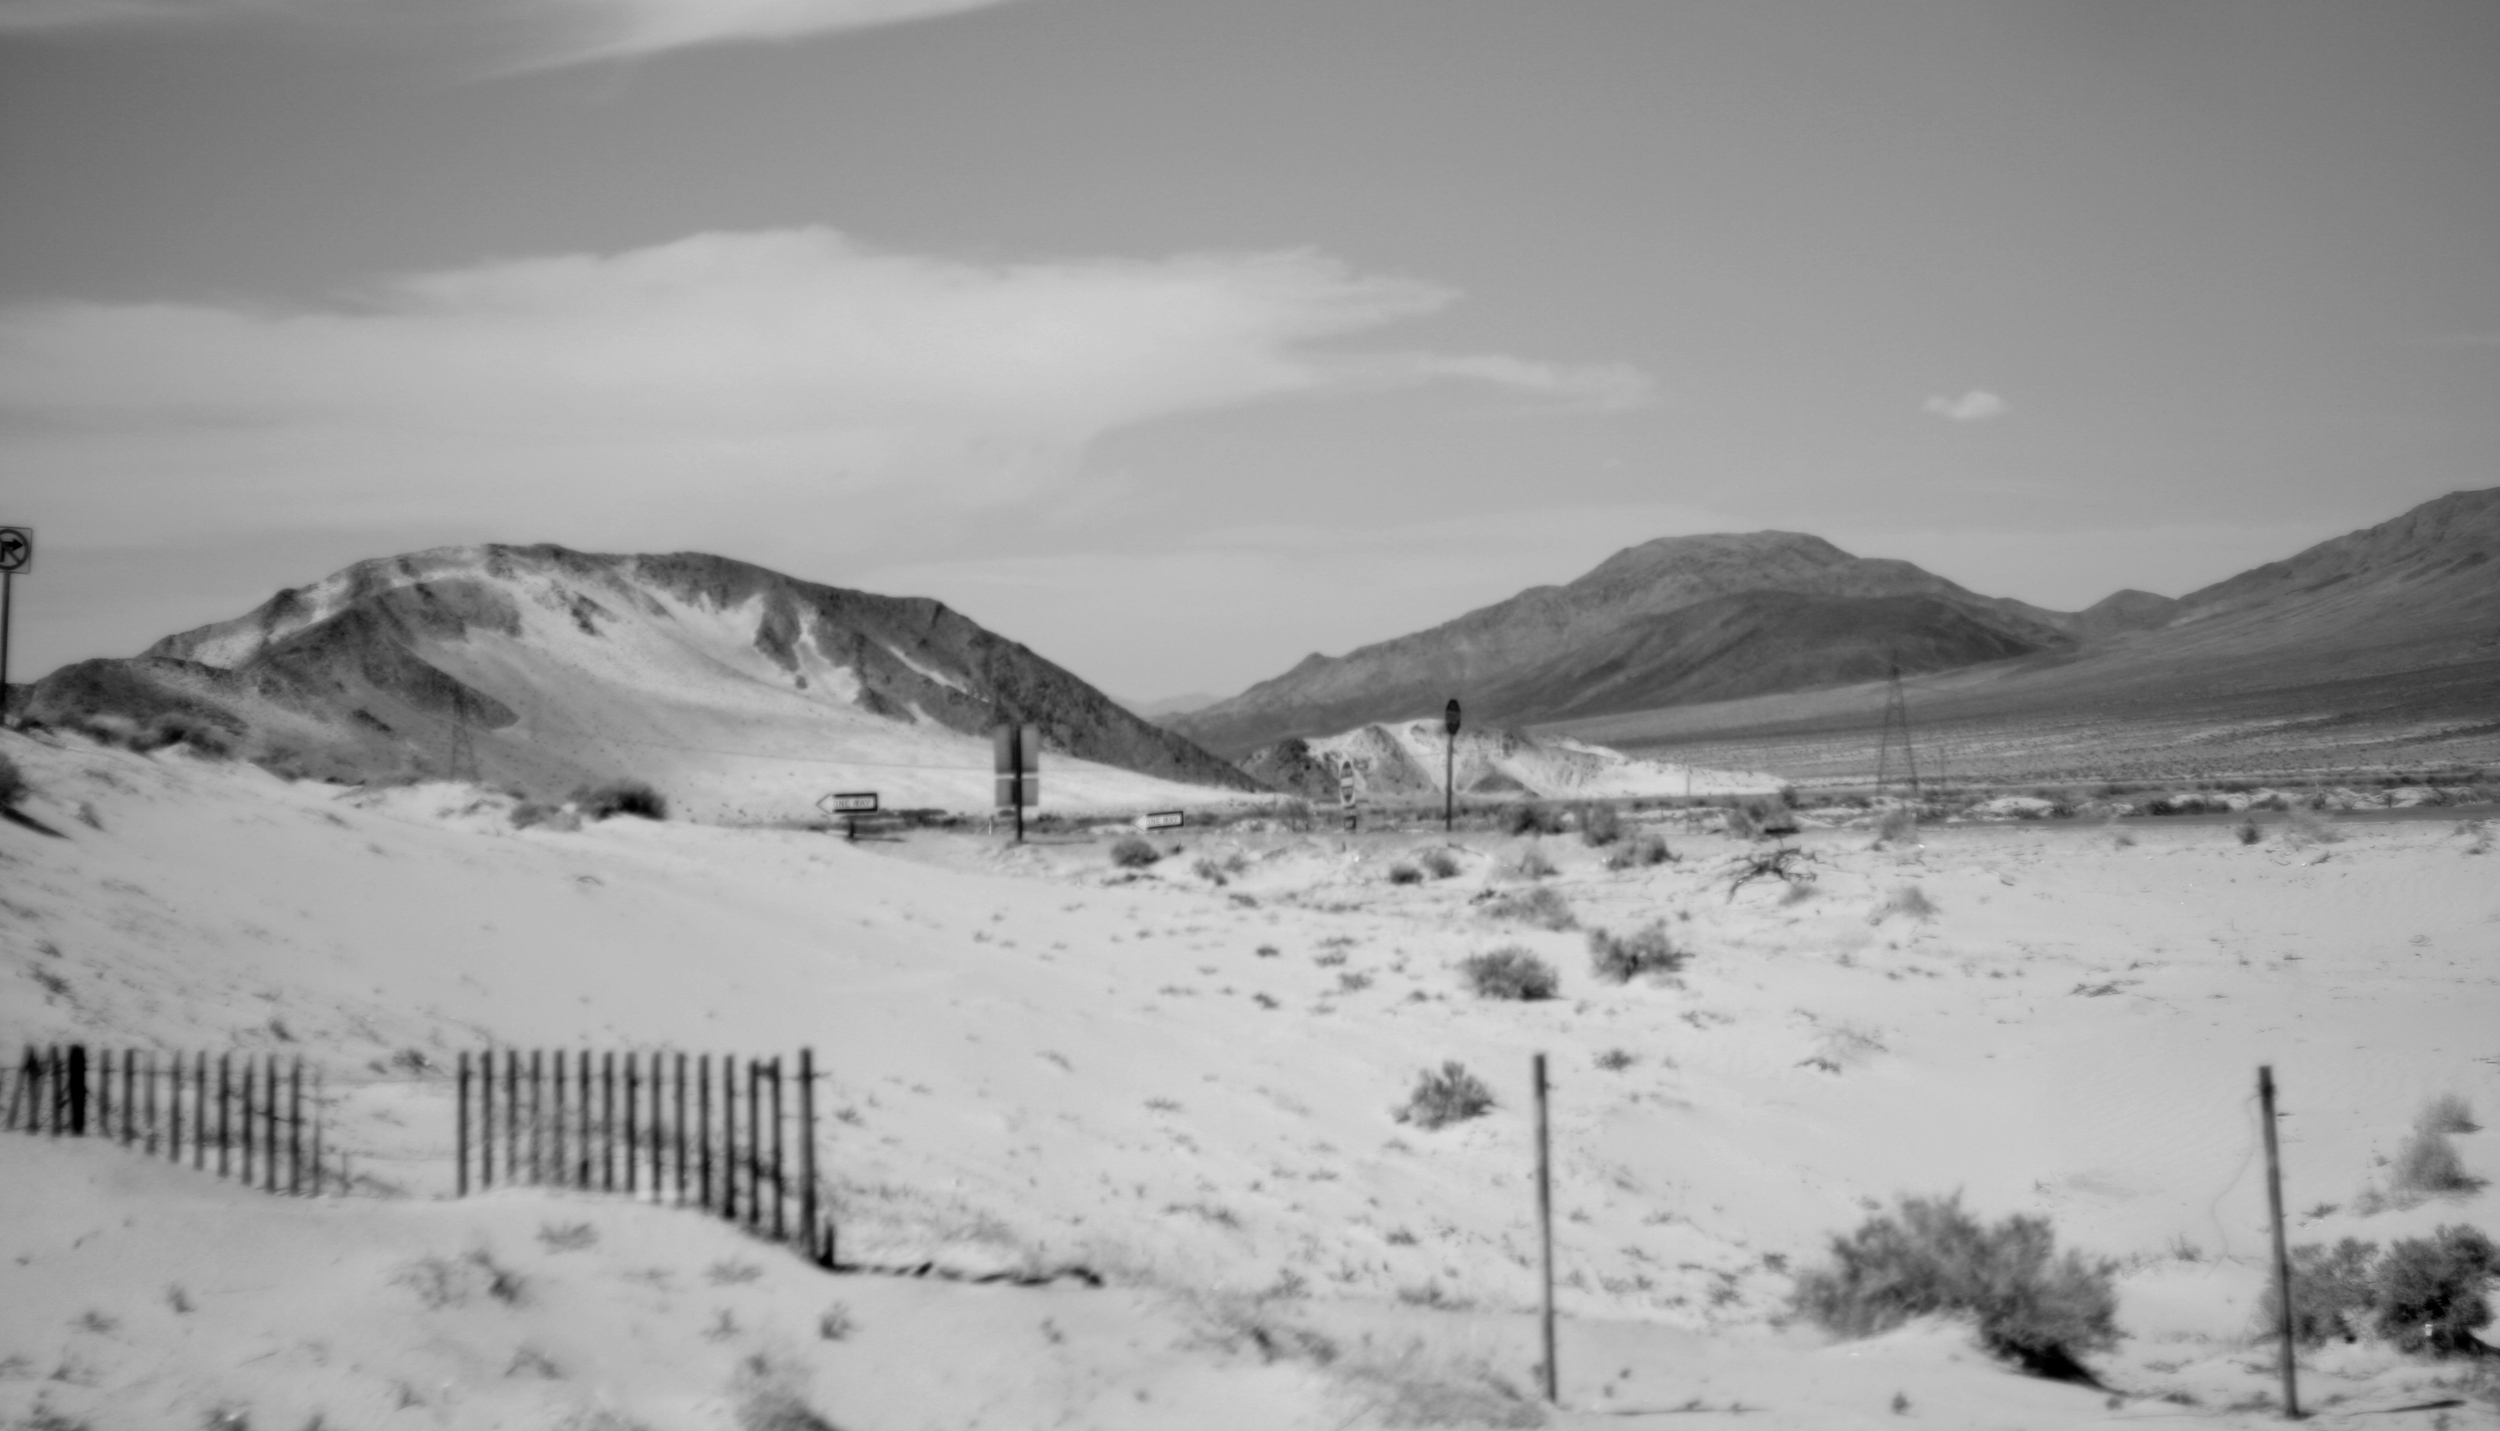 Desolate desert land in Nevada, California Black and white